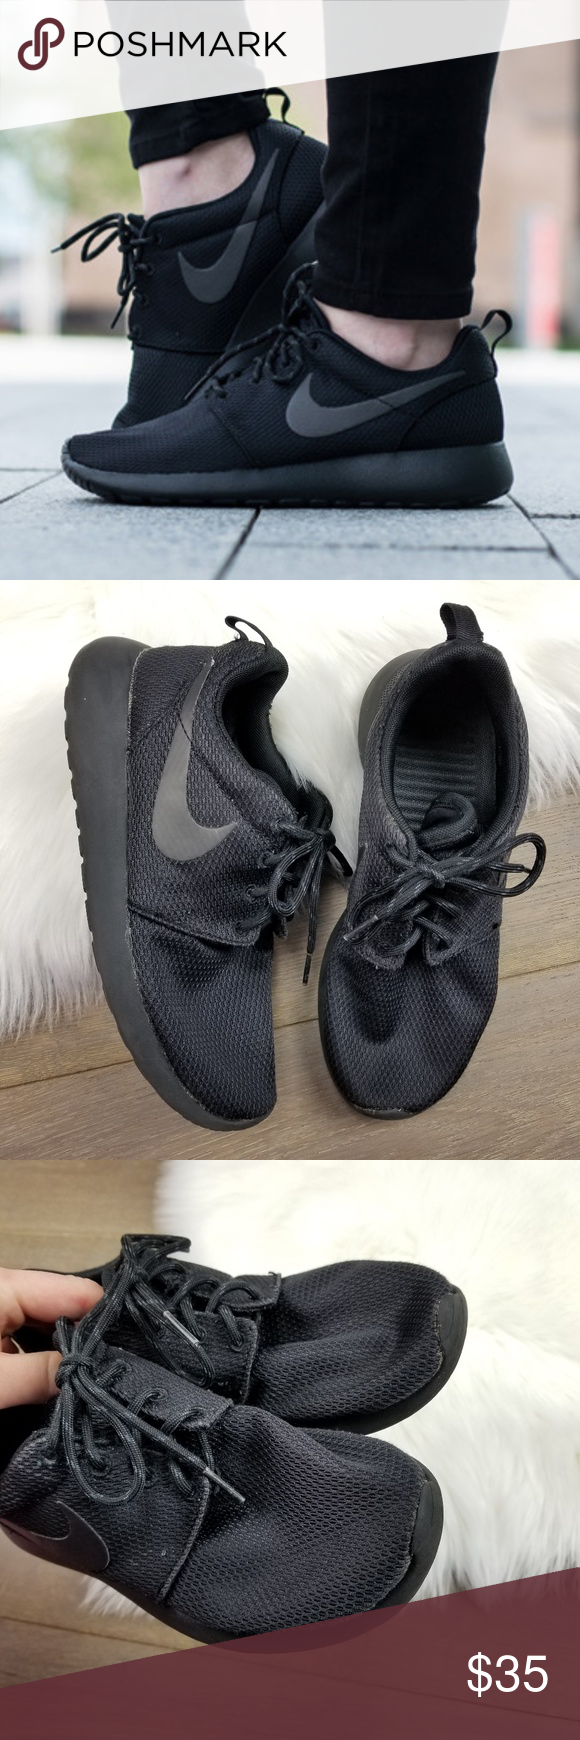 781958412c0a Nike Roshe One All Black Size 6 Women Pre owned still in good condition  Nike Shoes